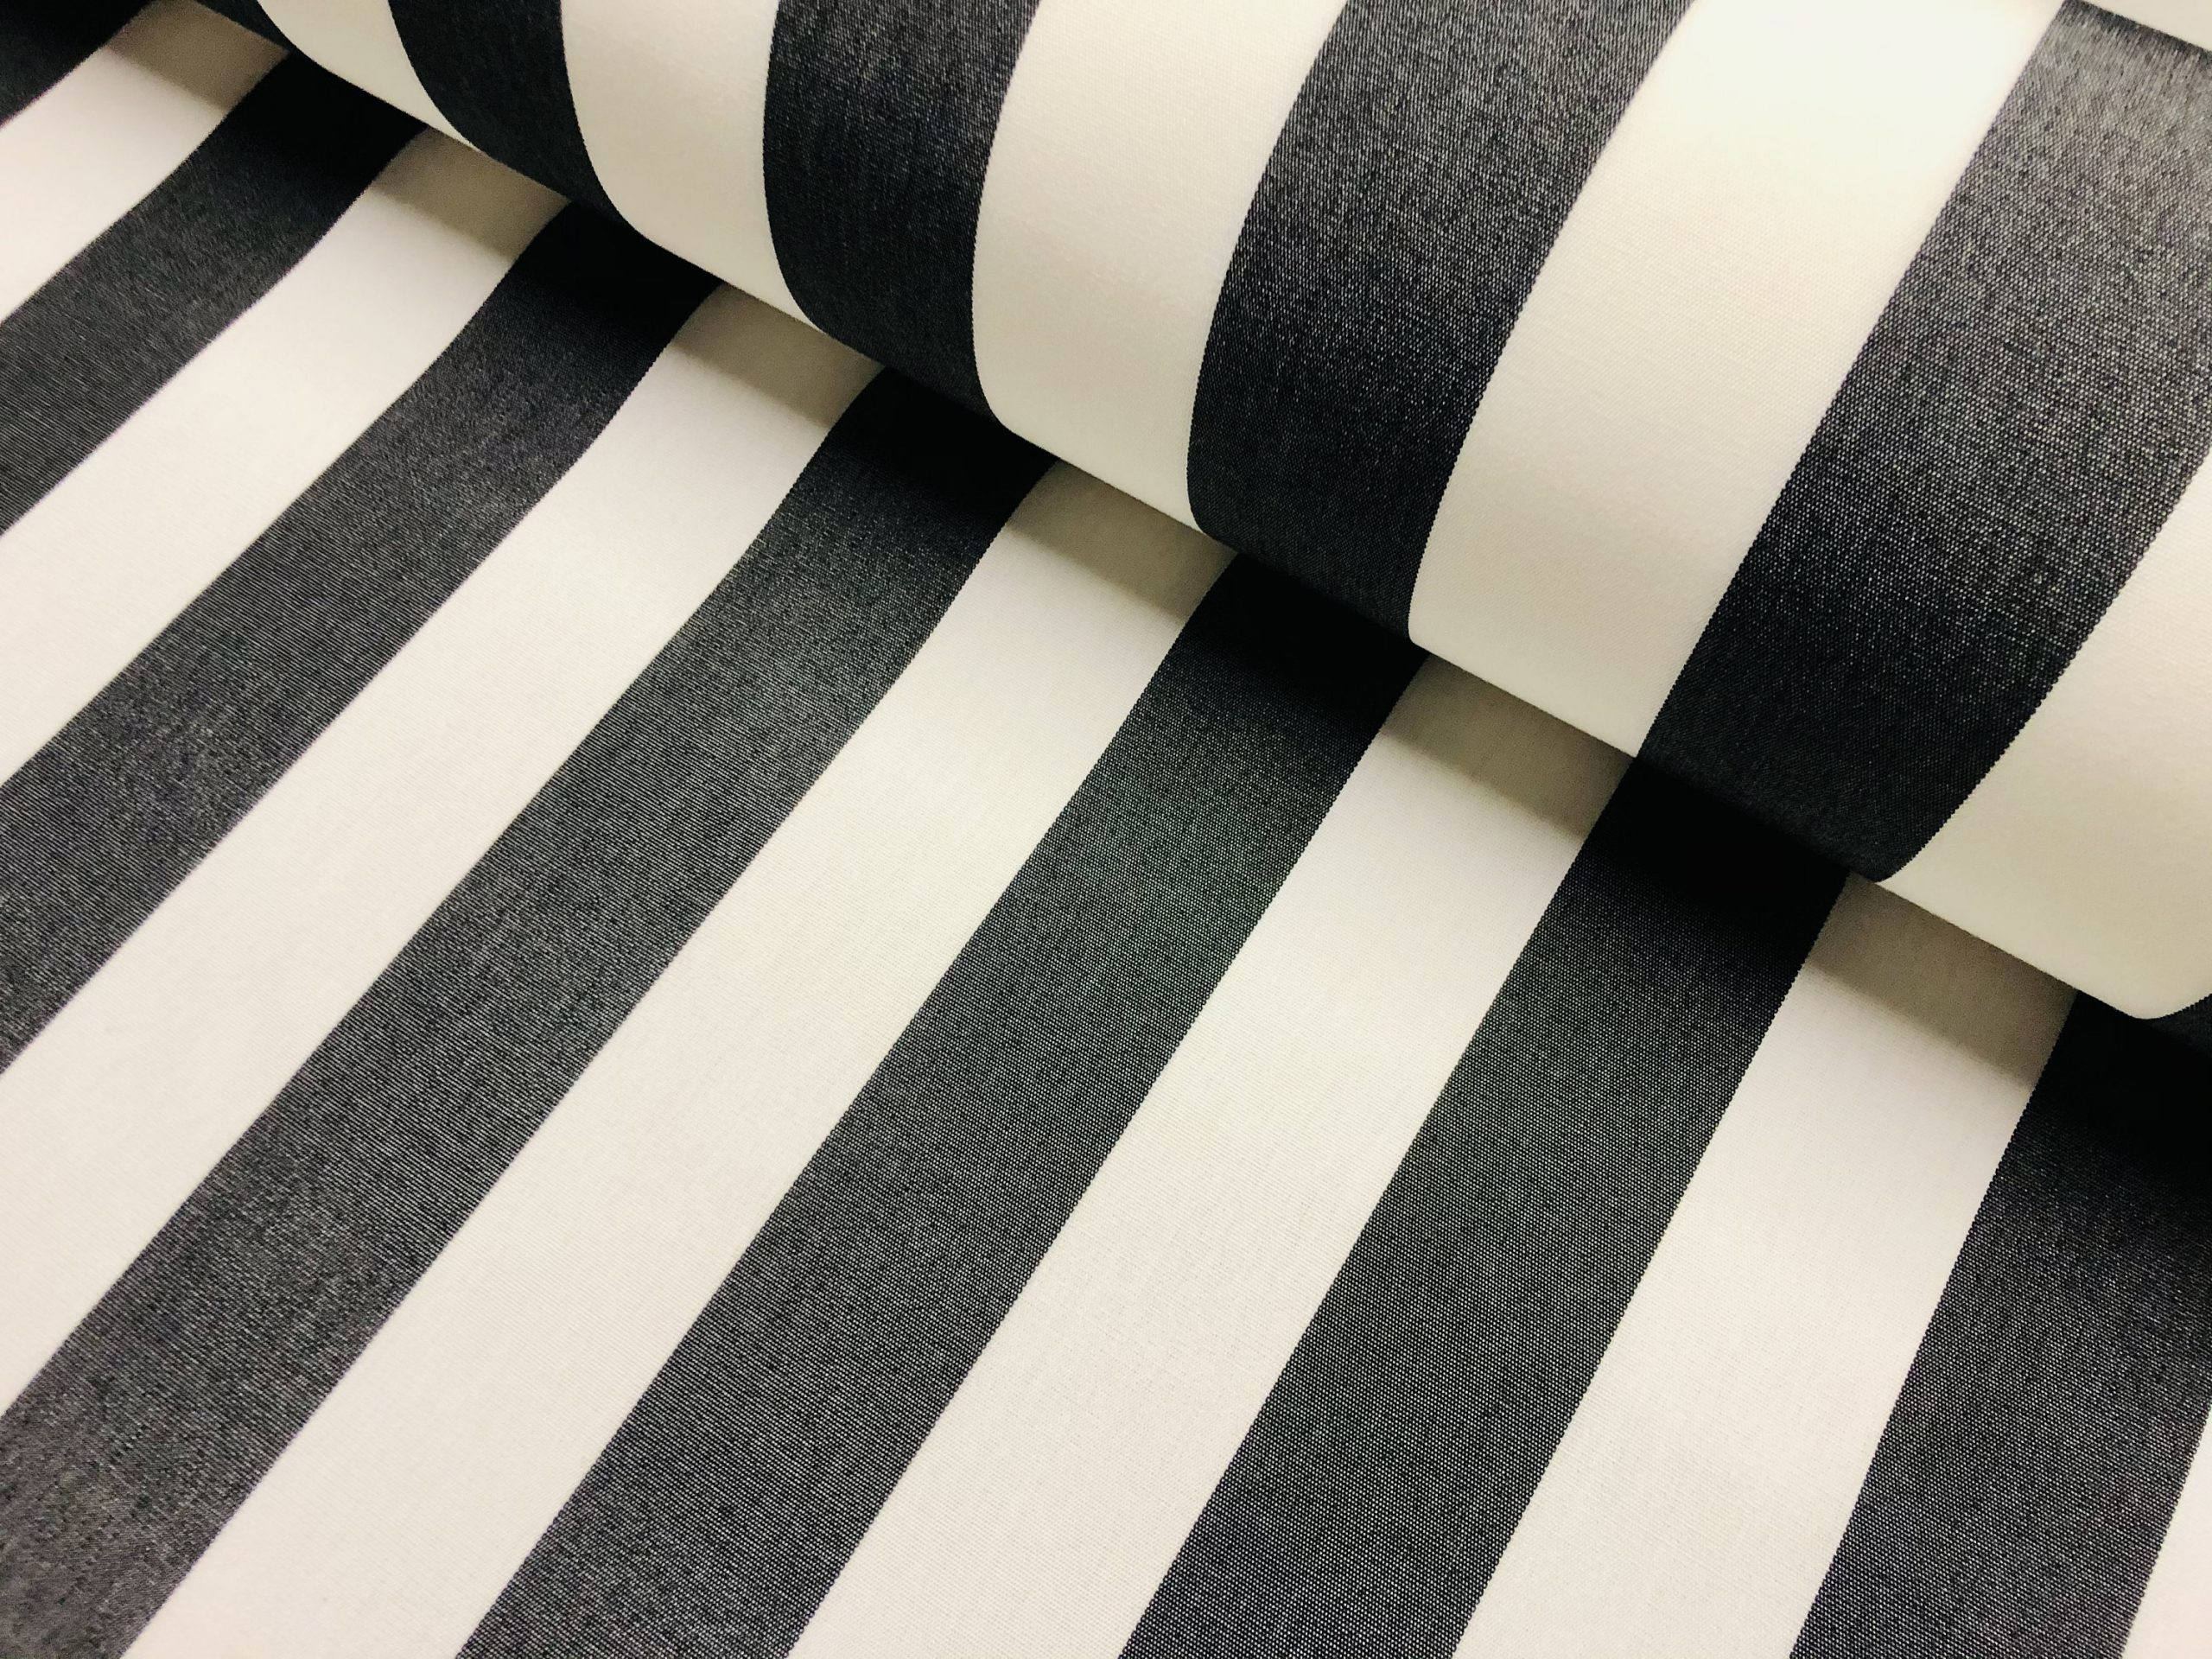 """Charcoal Grey & White Striped DRALON Outdoor Fabric Acrylic Teflon Waterproof Upholstery Material For Cushion Gazebo Beach – 63""""/160cm Wide"""